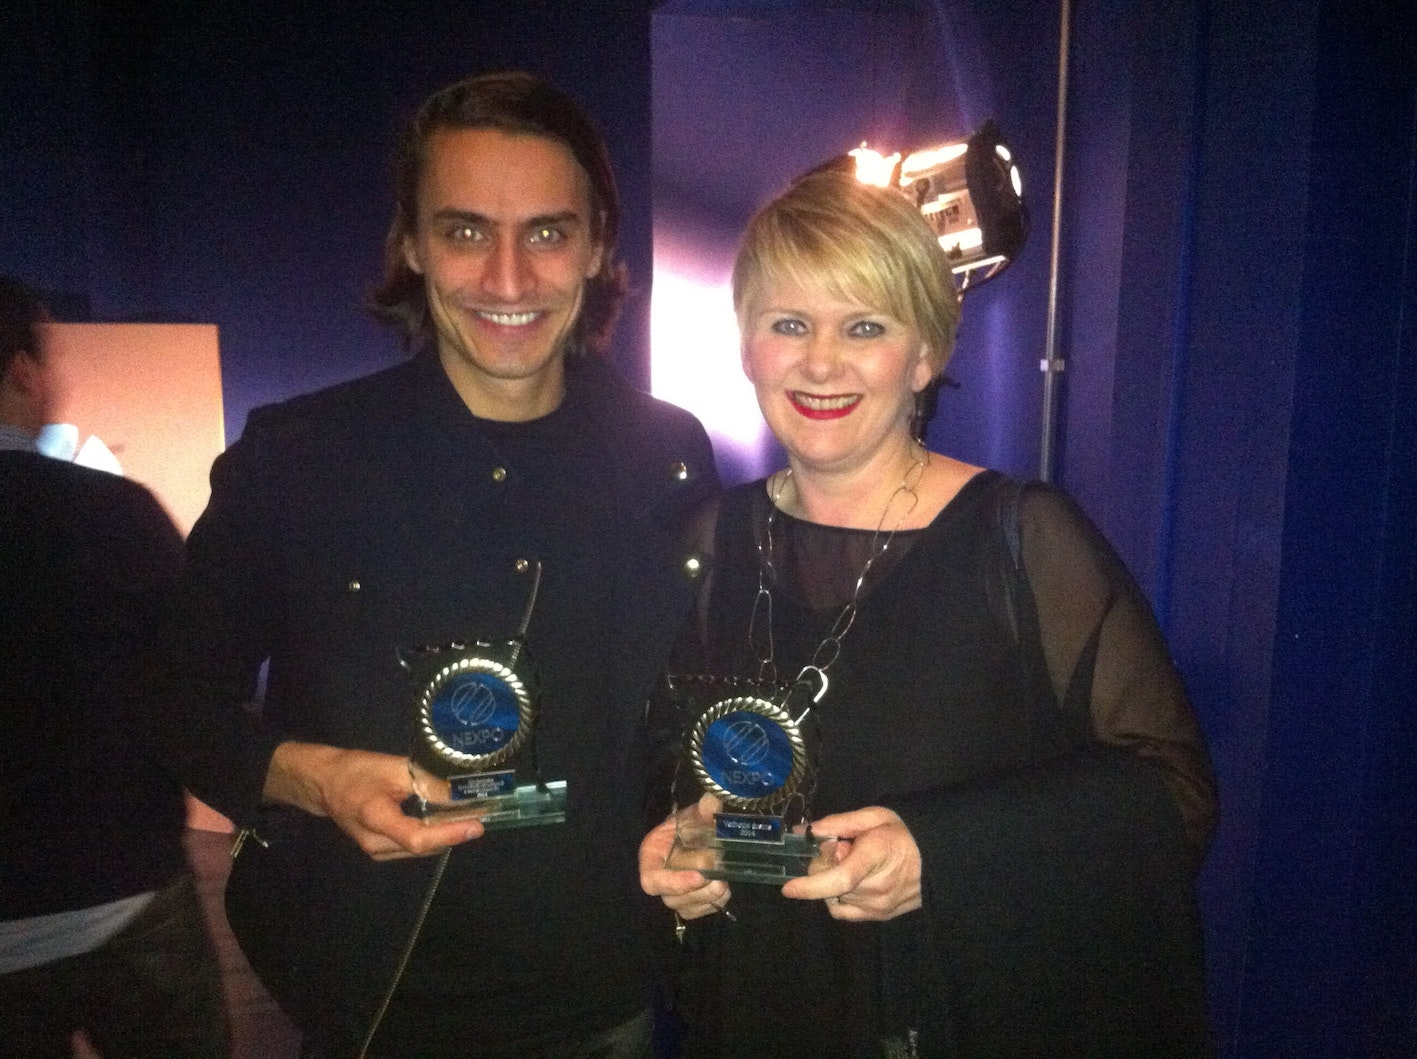 Elmar with the Minister of industry and commerce of Iceland receiving the prize for most influential company on social media 2014